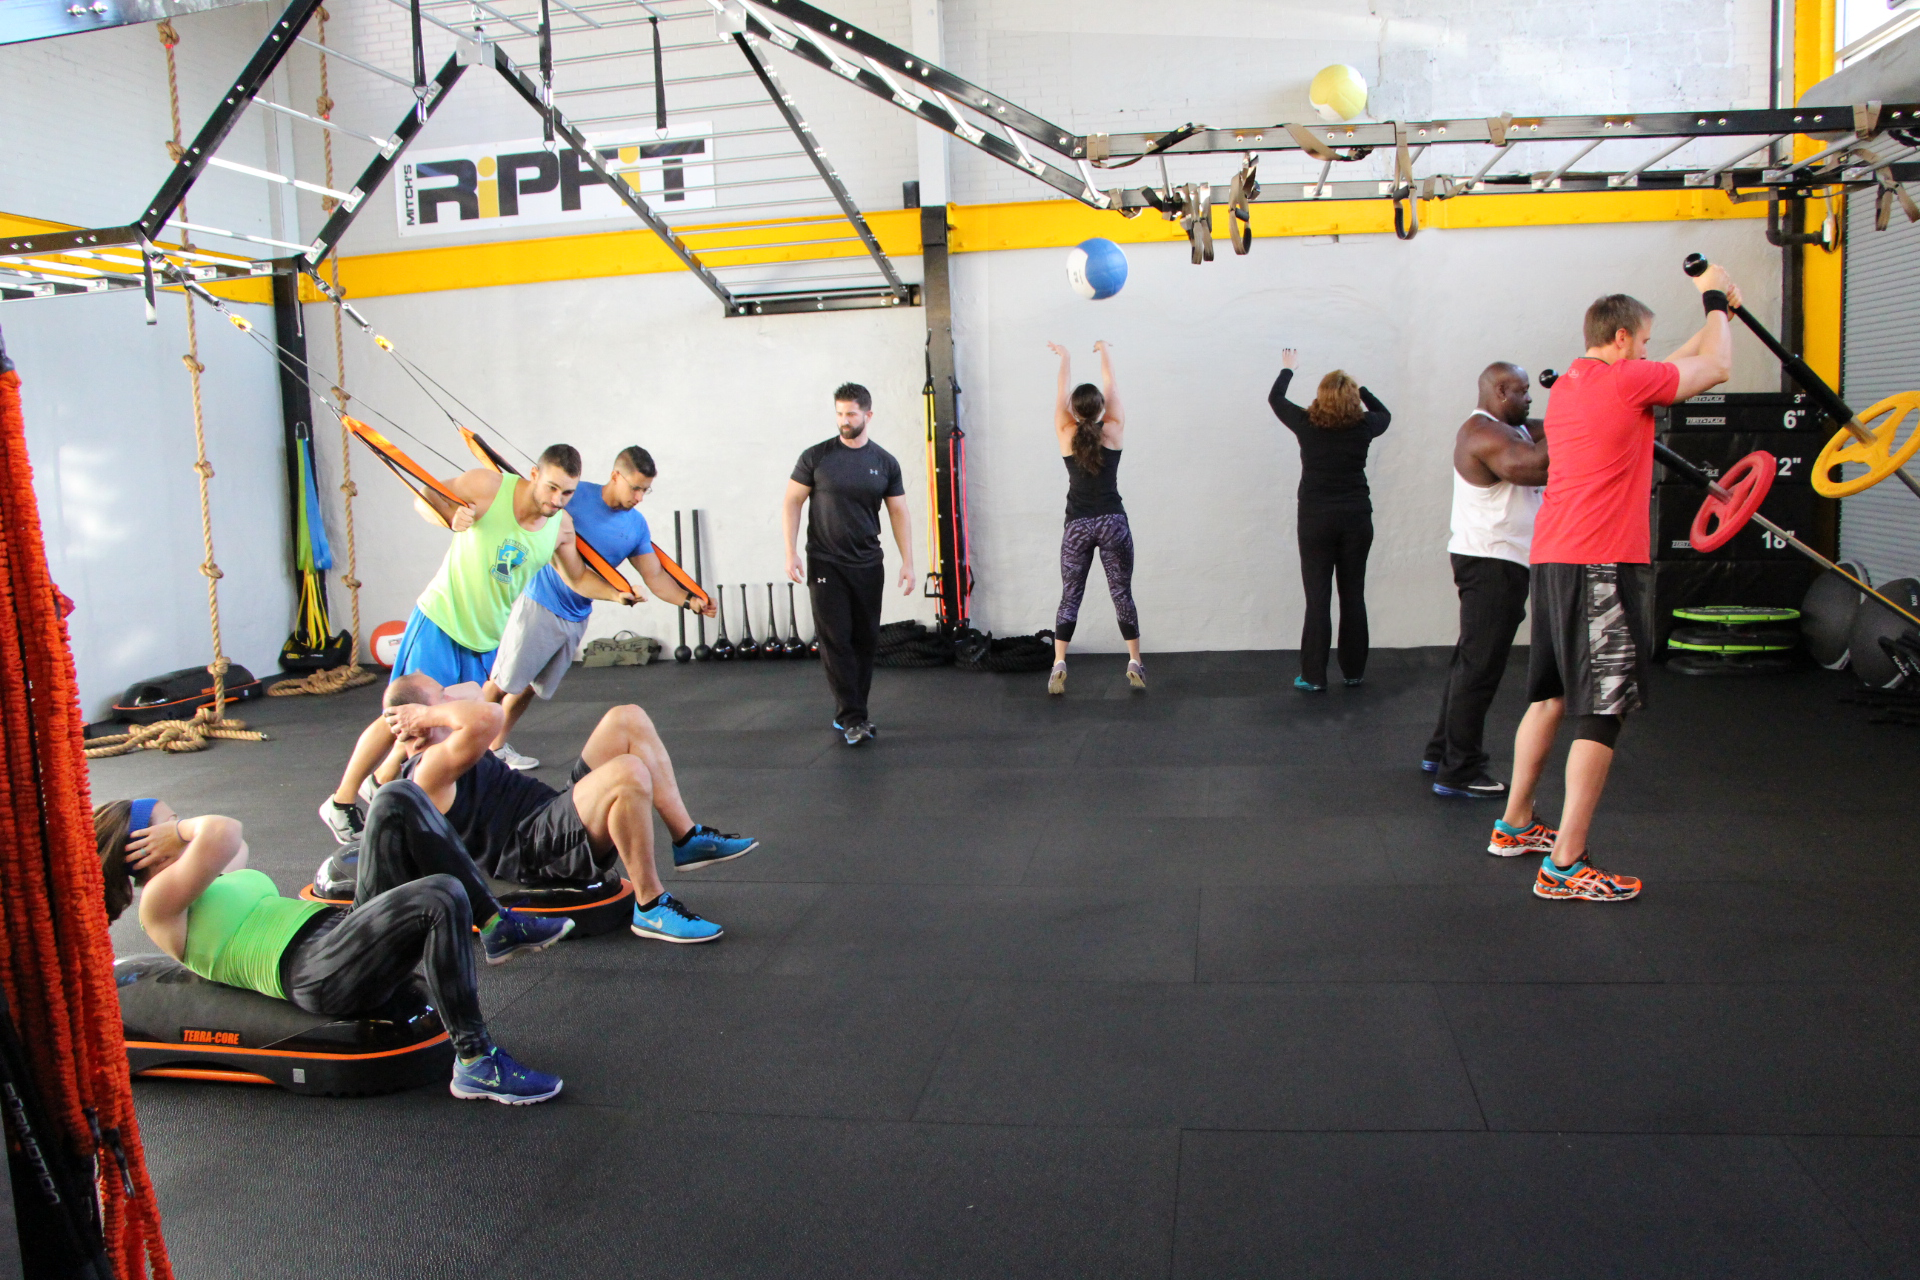 RipFit classes in West Chester, PA